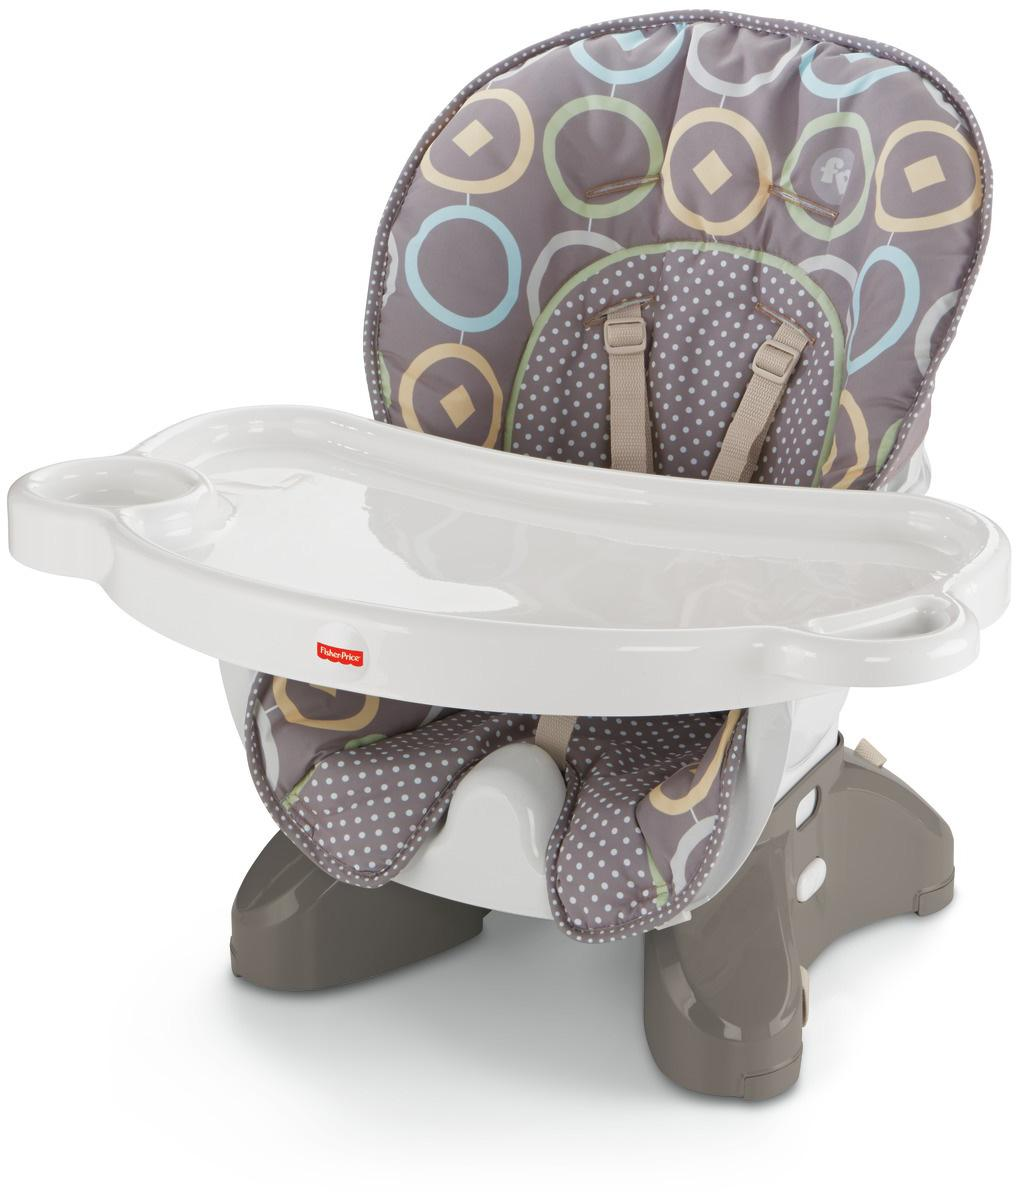 Amazon.com : Fisher-Price Spacesaver High Chair ...